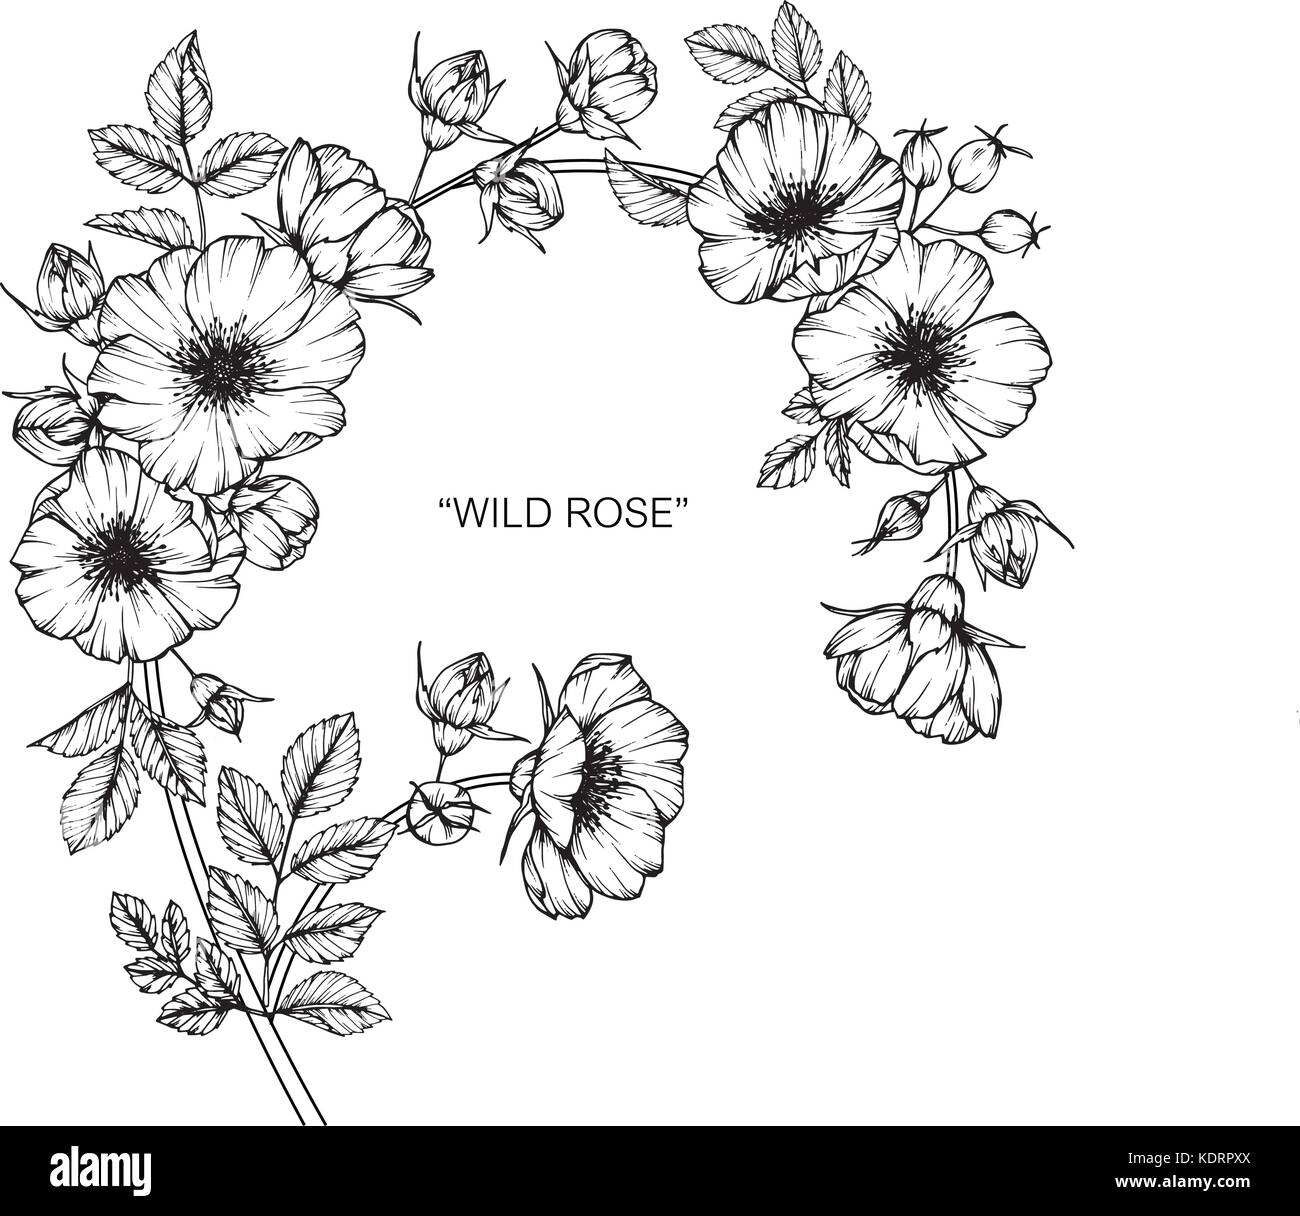 Wild Roses Flower Drawing Illustration Black And White With Line